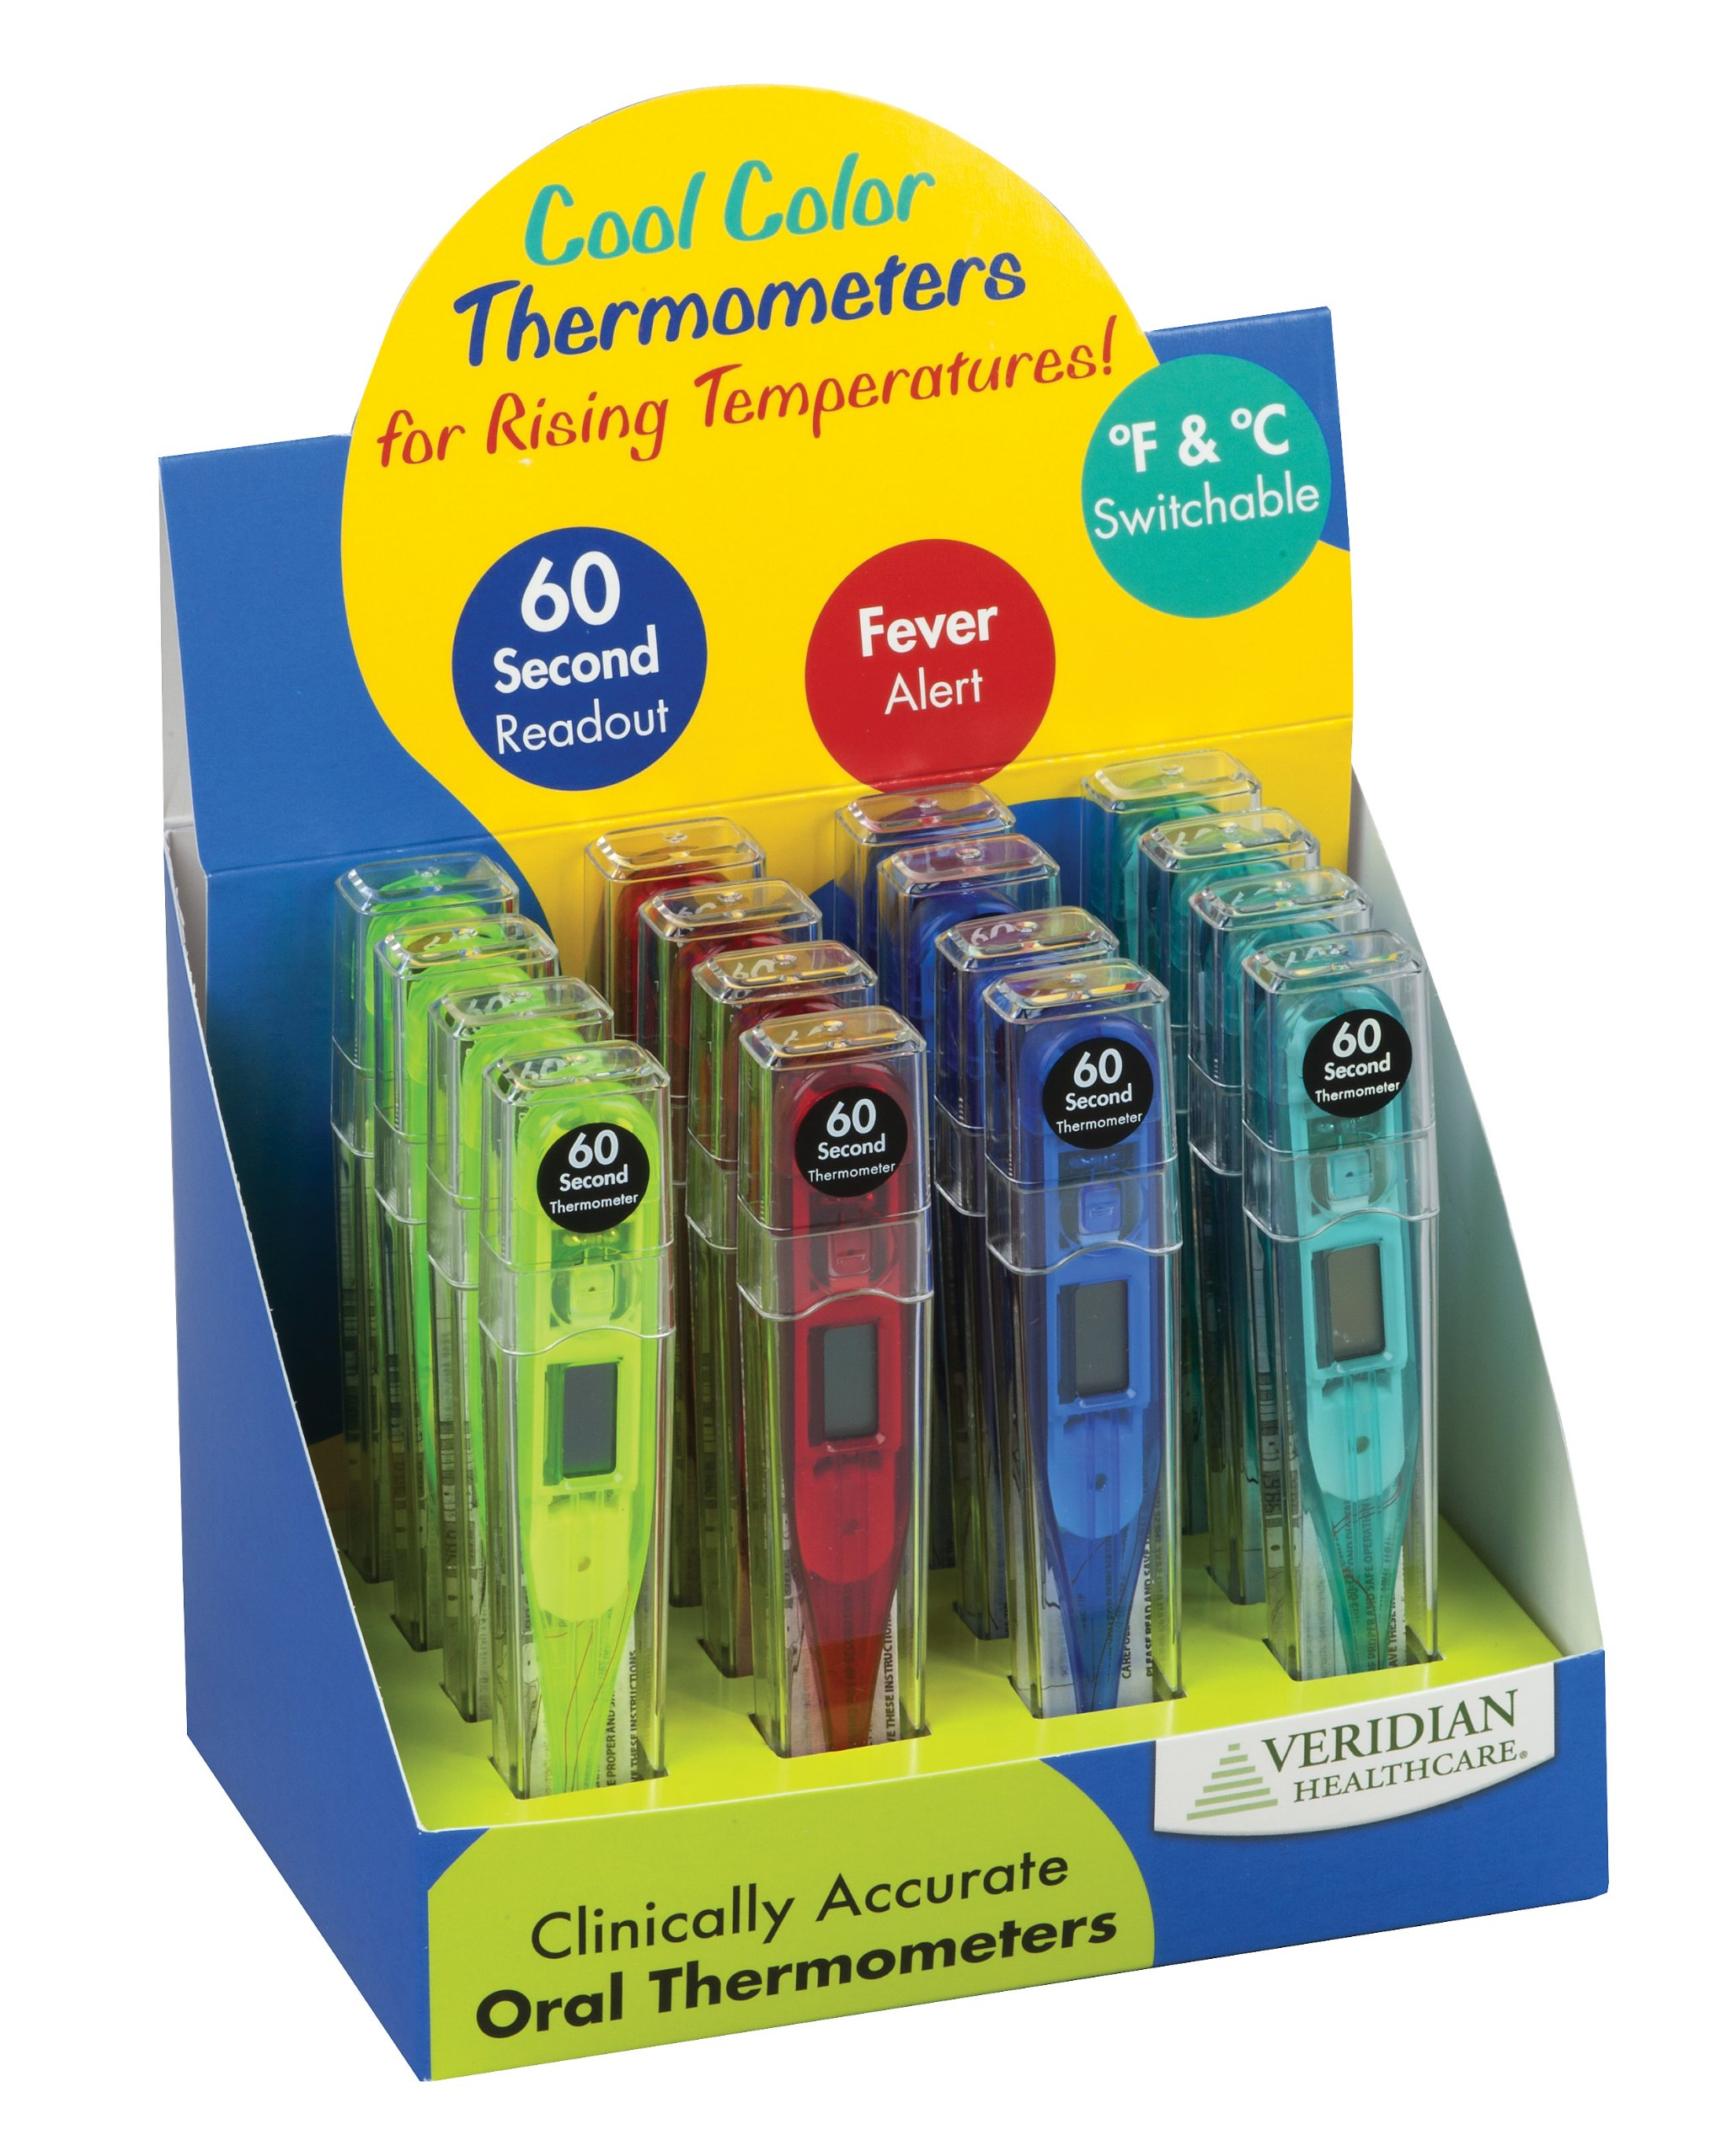 Veridian Healthcare 08-301VC Cool Colors Digital Thermometer Display, Blue, Green, Red and Yellow